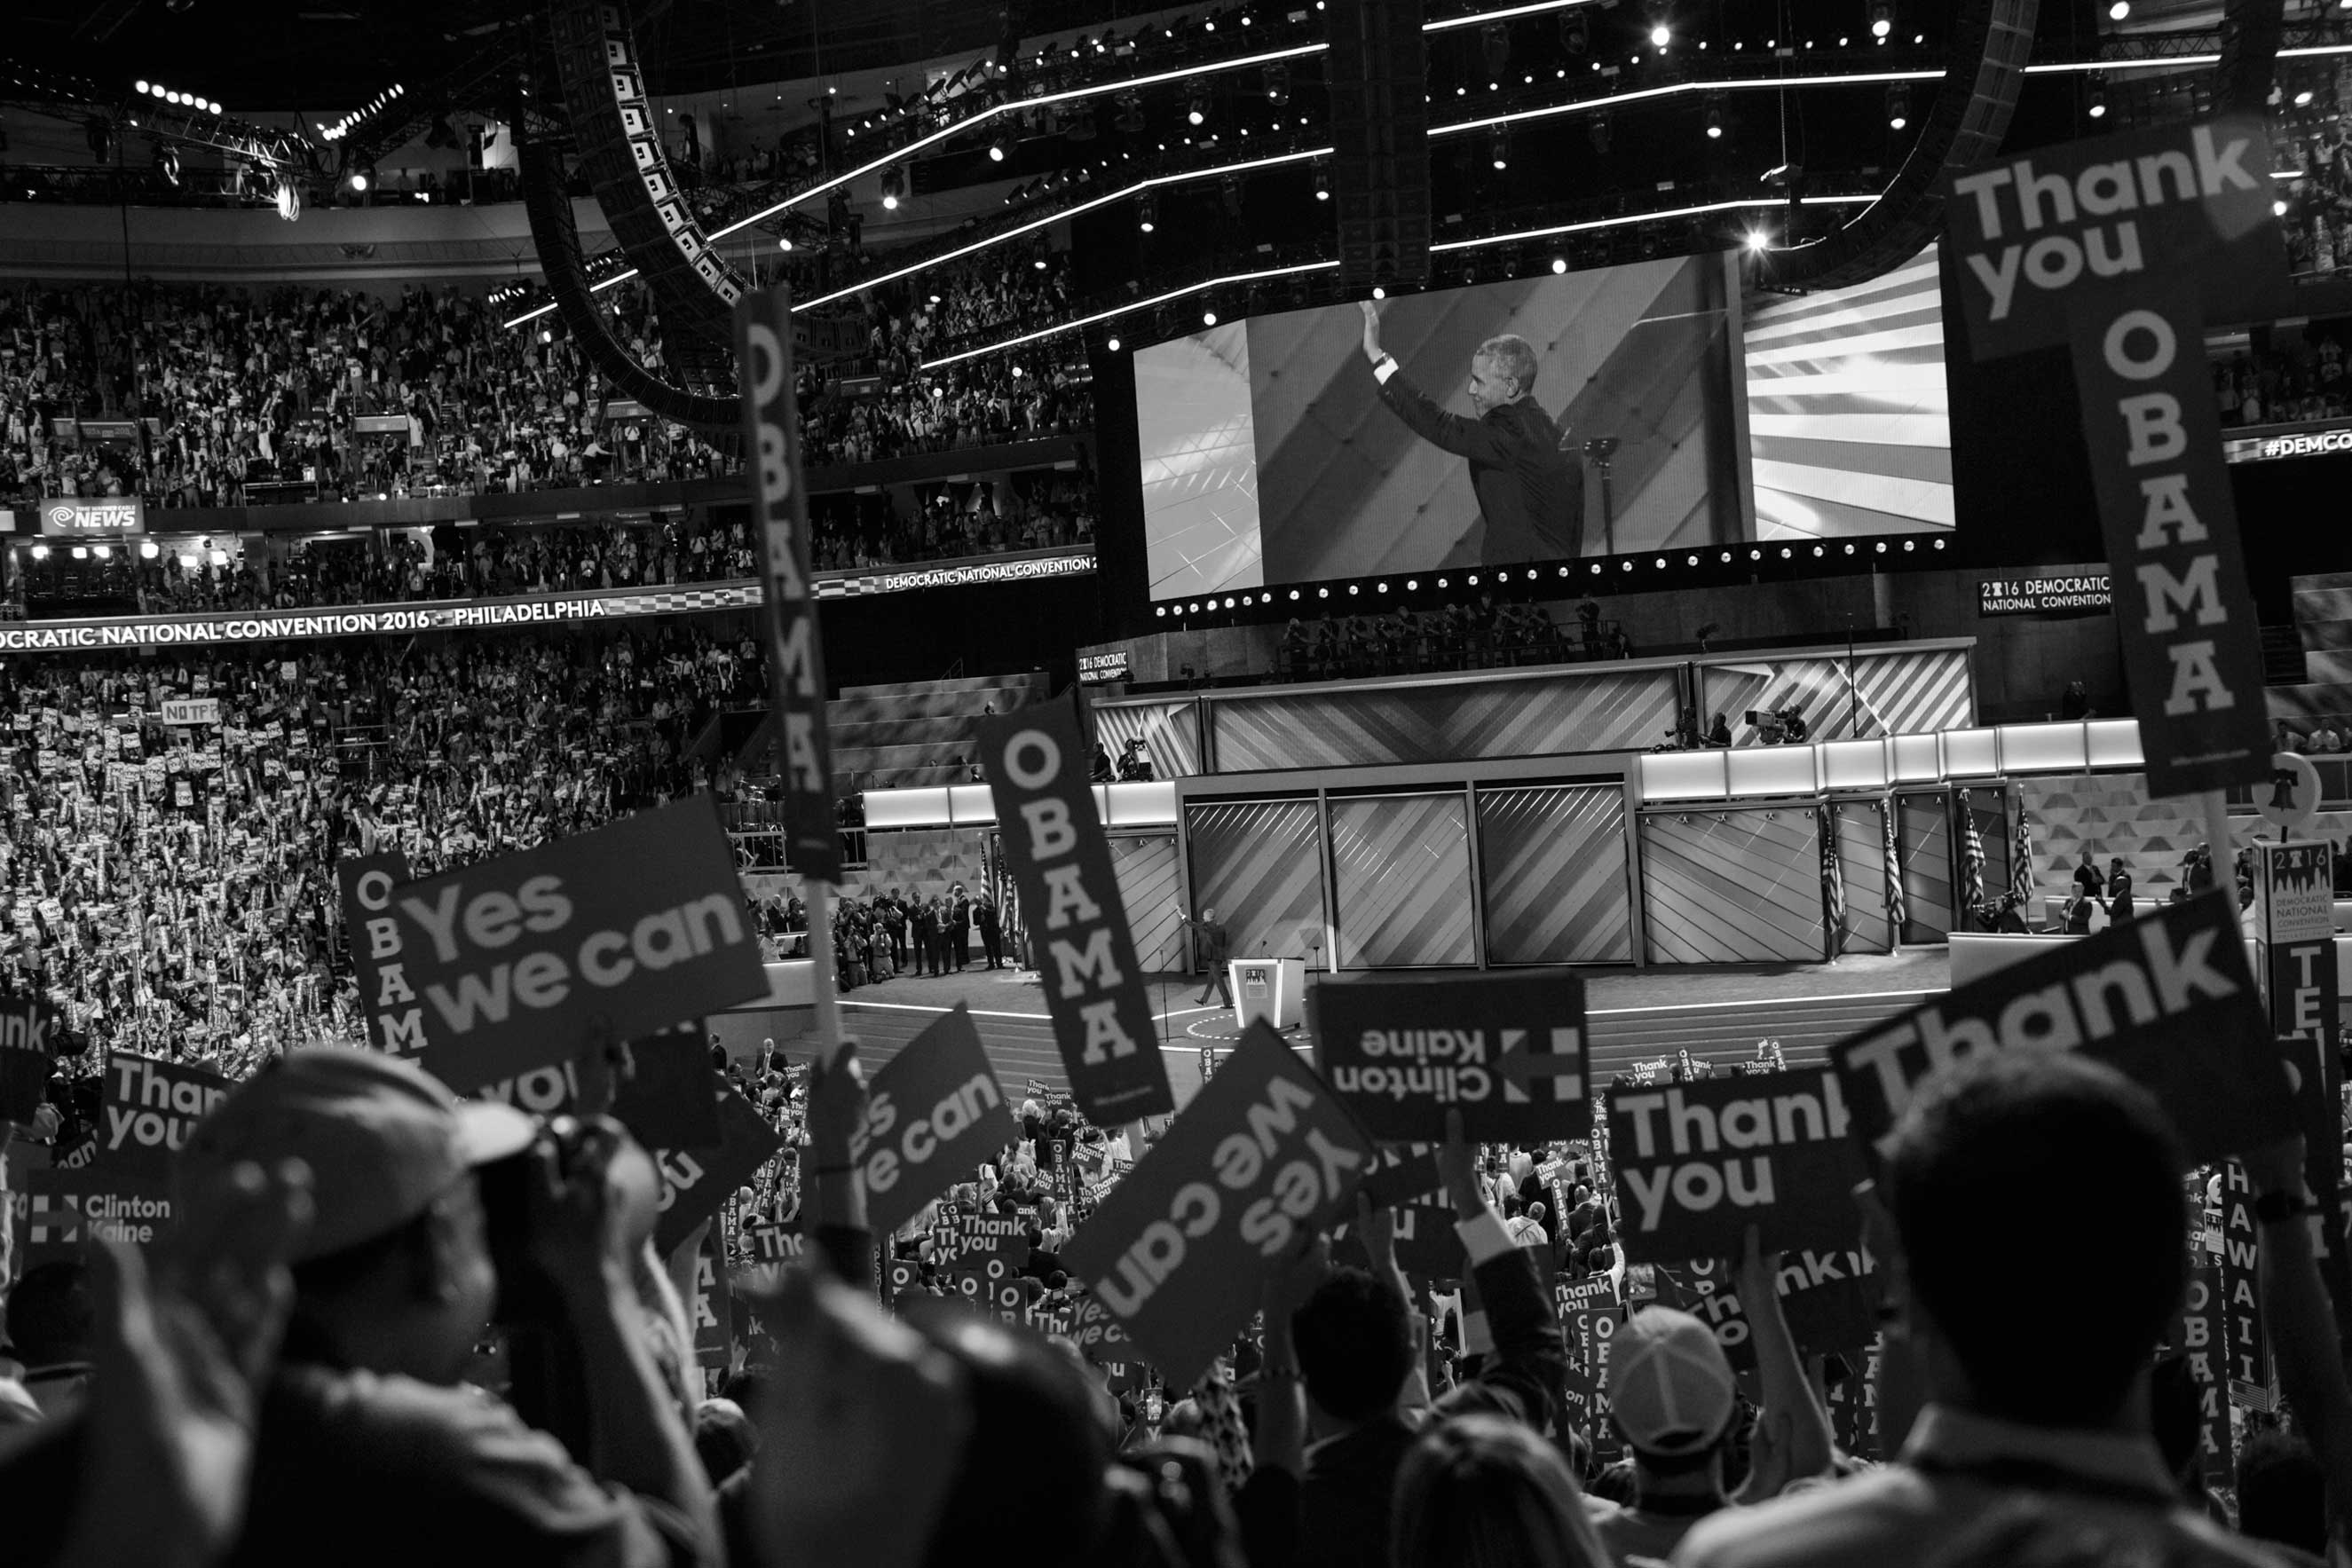 27 July 2016 - Philadelphia, PA - President Barack Obama is waving to the crowd after his speech on the third day of the Democratic National Convention inside the Wells Fargo Center.